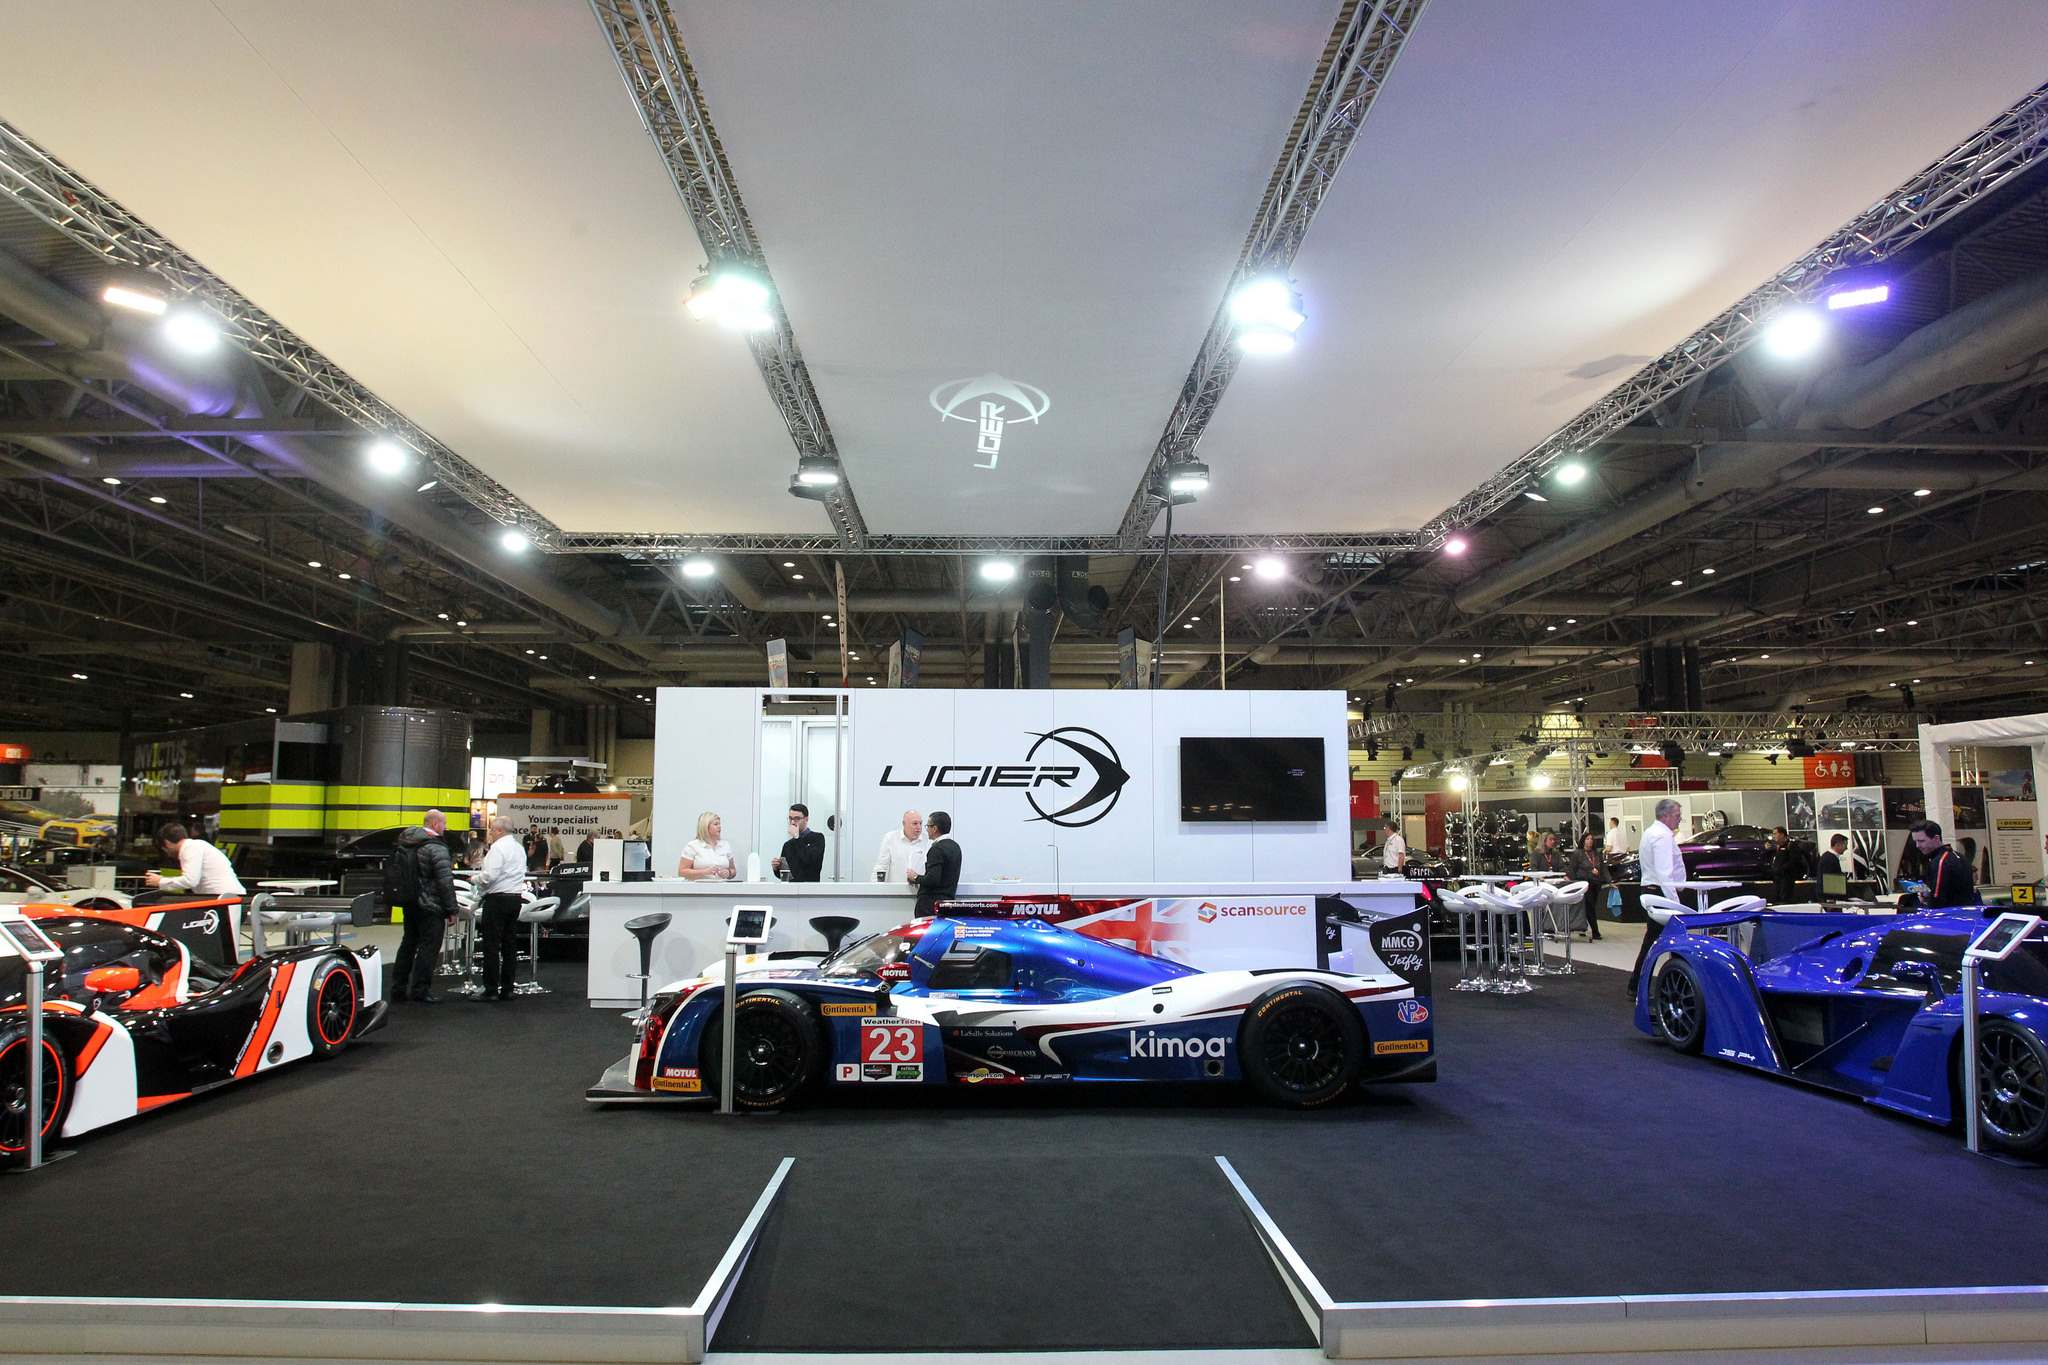 ligier 20182 Ligier at Autosport International Show 2018